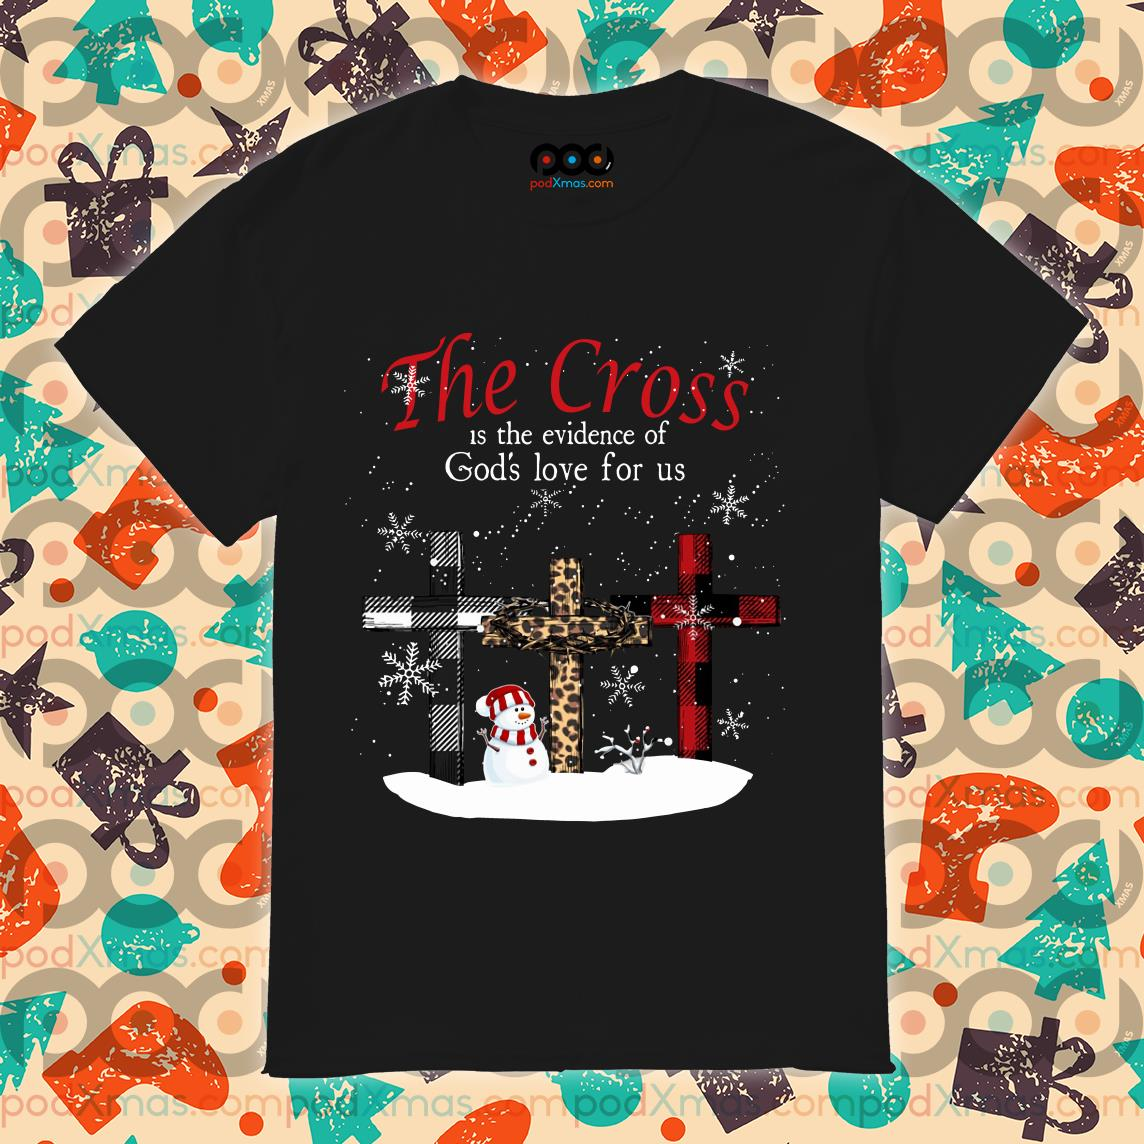 The Cross is the evidence of God's love for us shirt